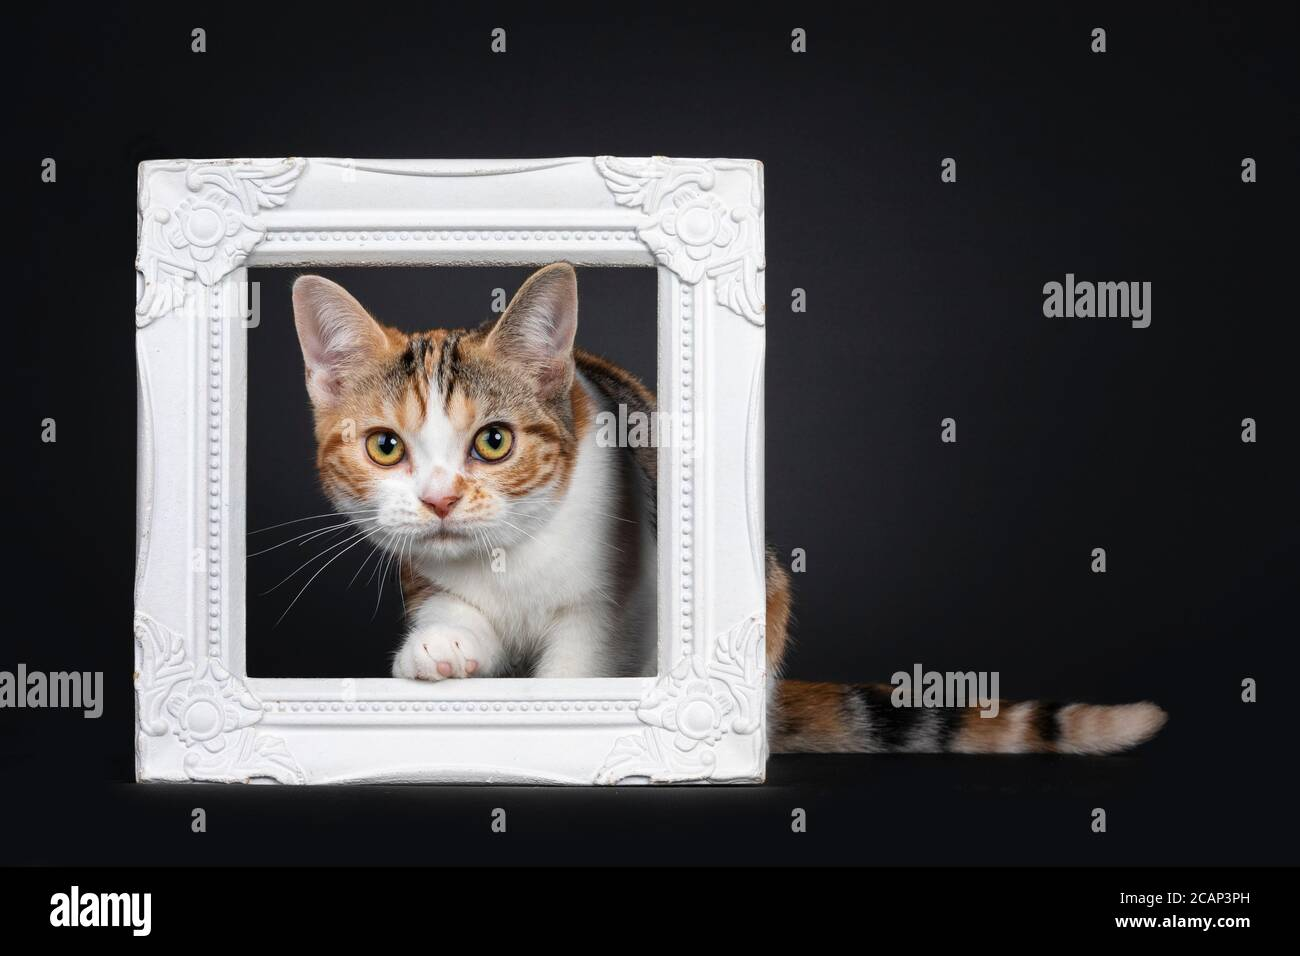 Pretty American Shorthair cat kitten with amazing pattern, stepping through white photo frame. Looking straight at camera with yellow eyes. Isolated o Stock Photo